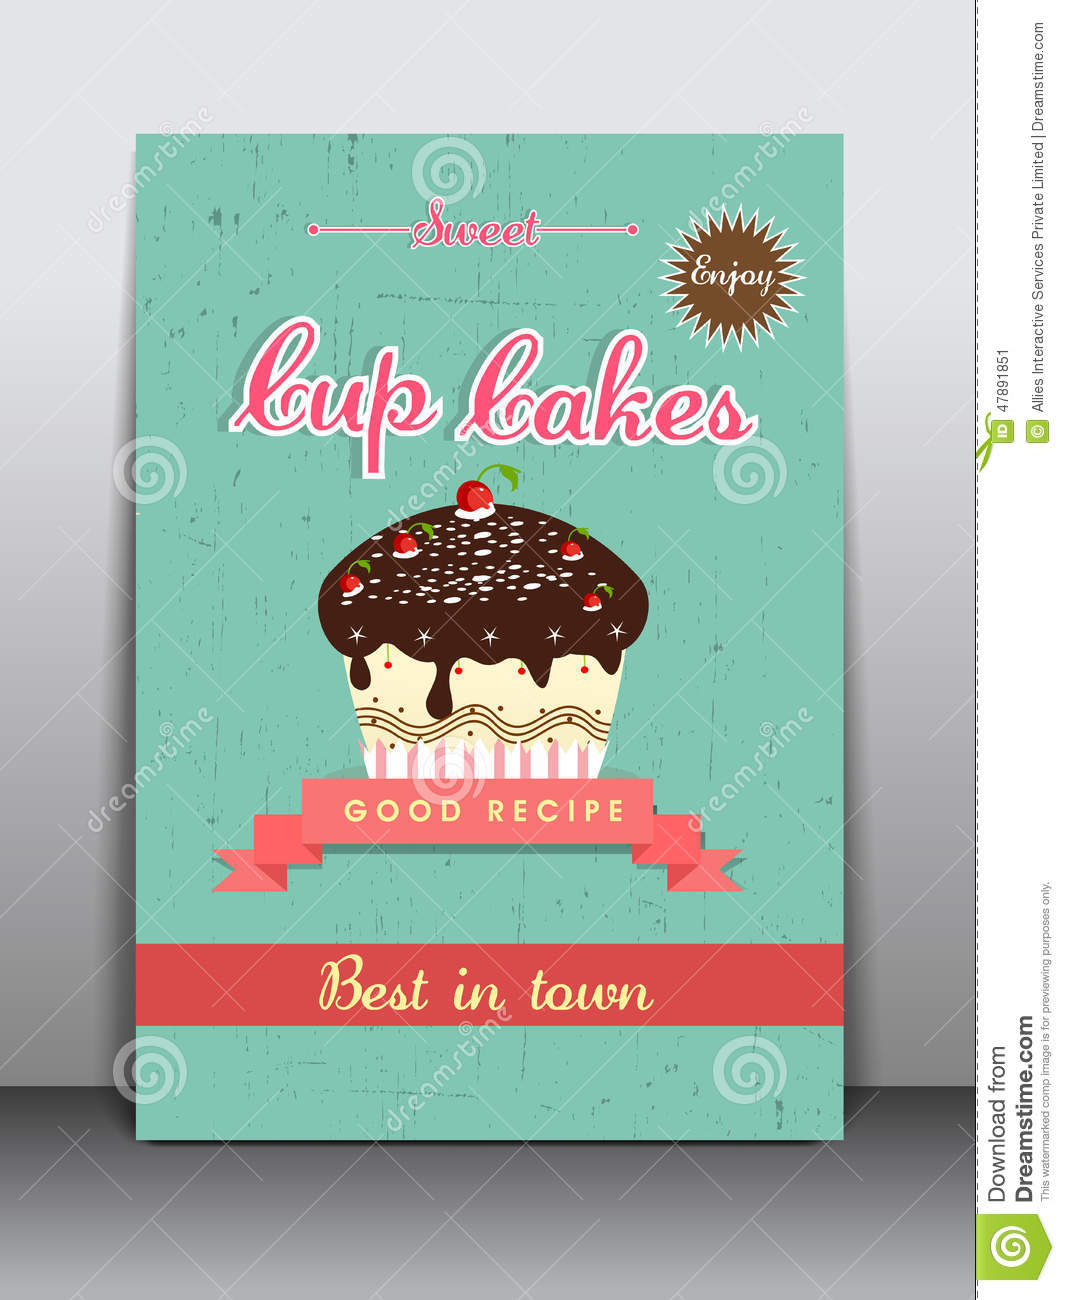 Stock Illustration Flyer Brochure Template Cup Cakes Shop Stylish Menu Card Design Image47891851 on Thank You Card Modern Graphics Cards For